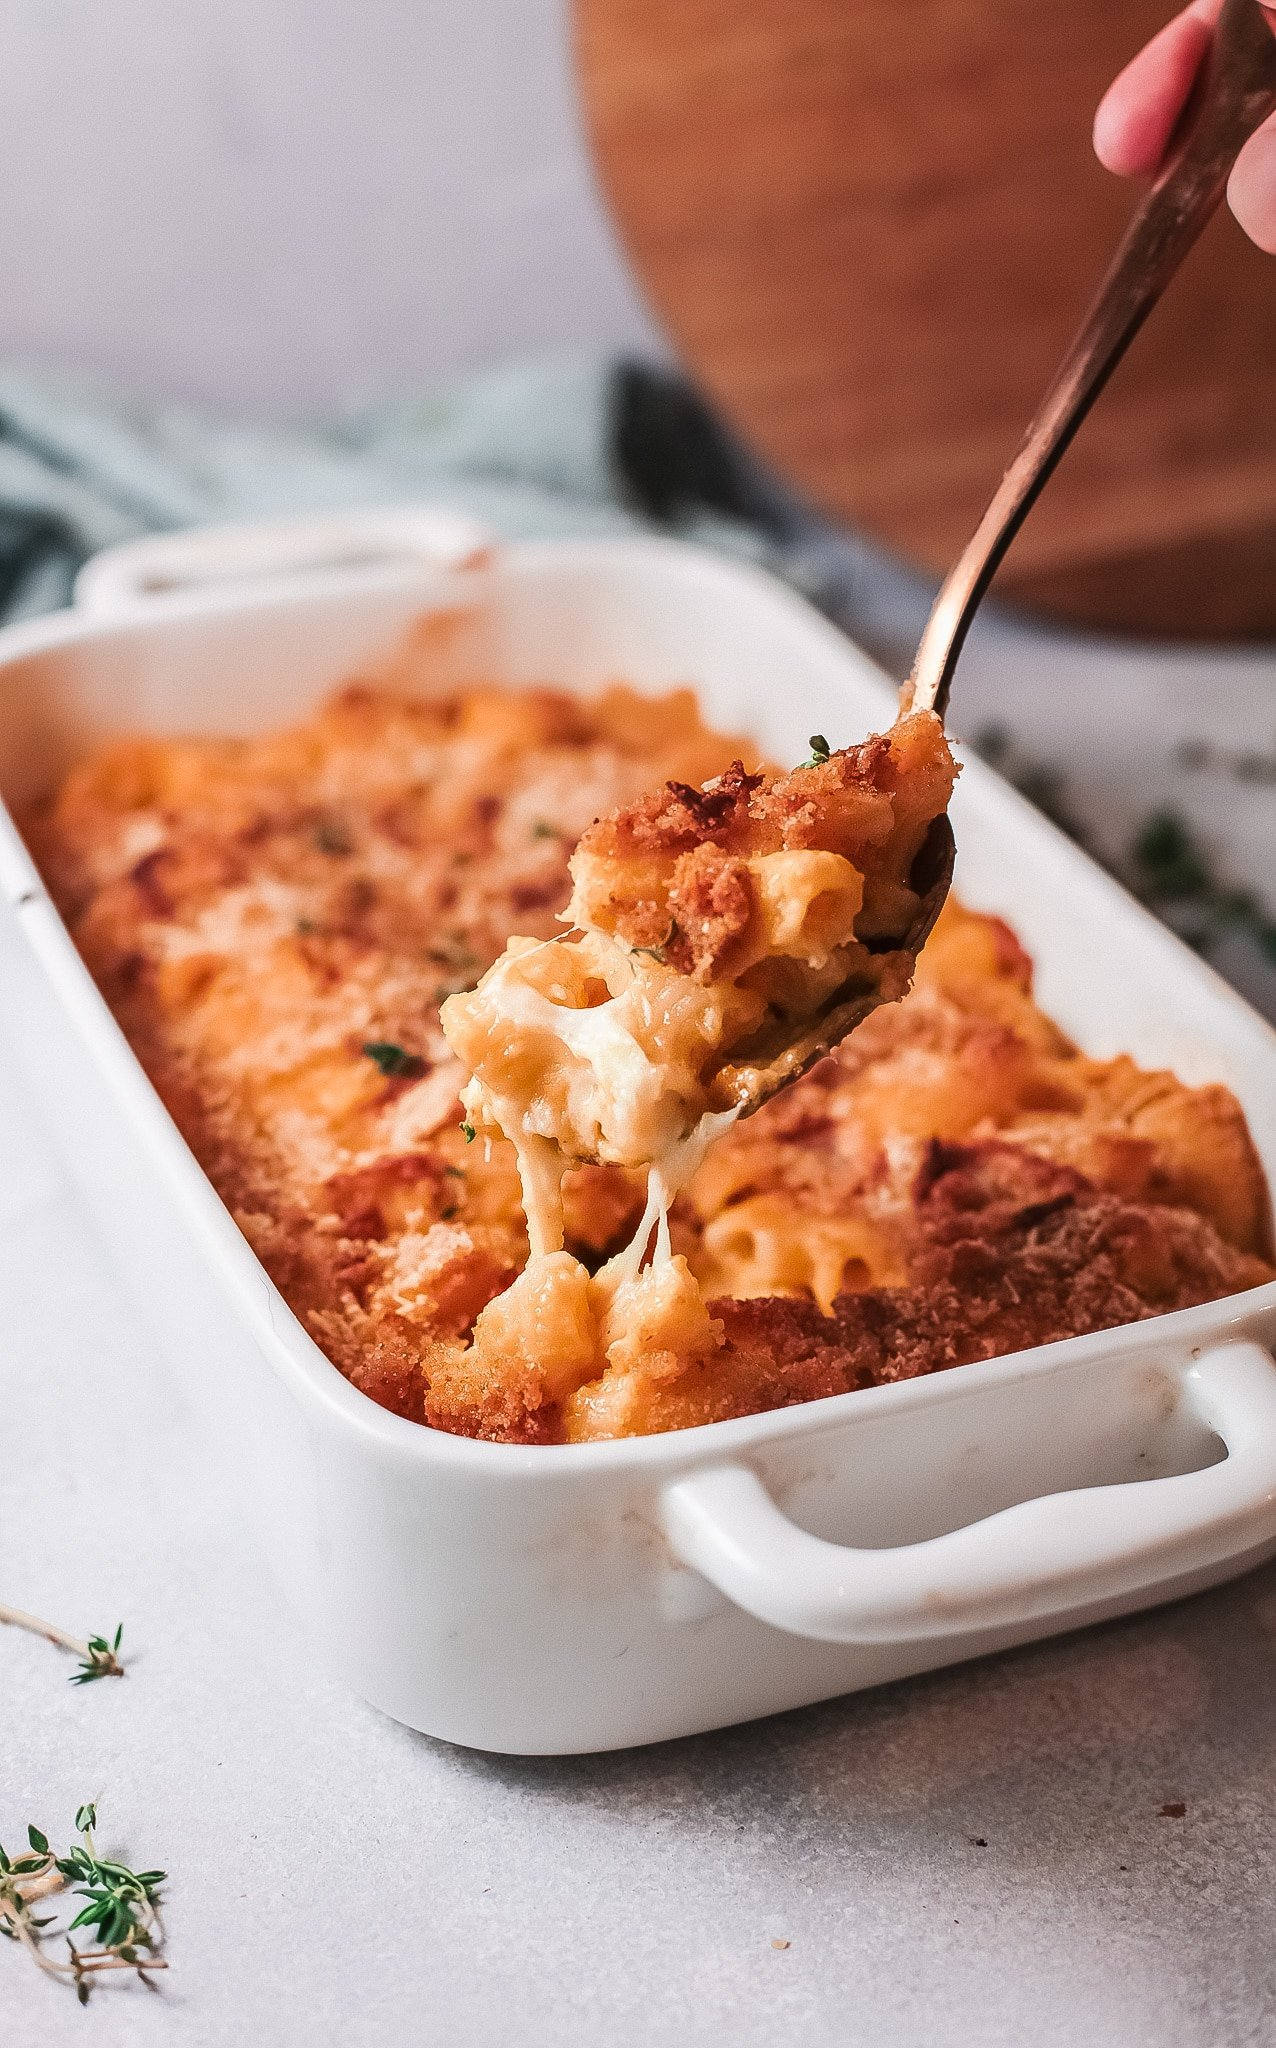 Baked Pumpkin Mac and Cheese Pan Scoop. This Easy Baked Pumpkin Mac and Cheese is ultra-creamy, perfectly cheesy, and gooey. Topped with a crispy parmesan breadcrumb crust it's the perfect fall dish for the whole family.